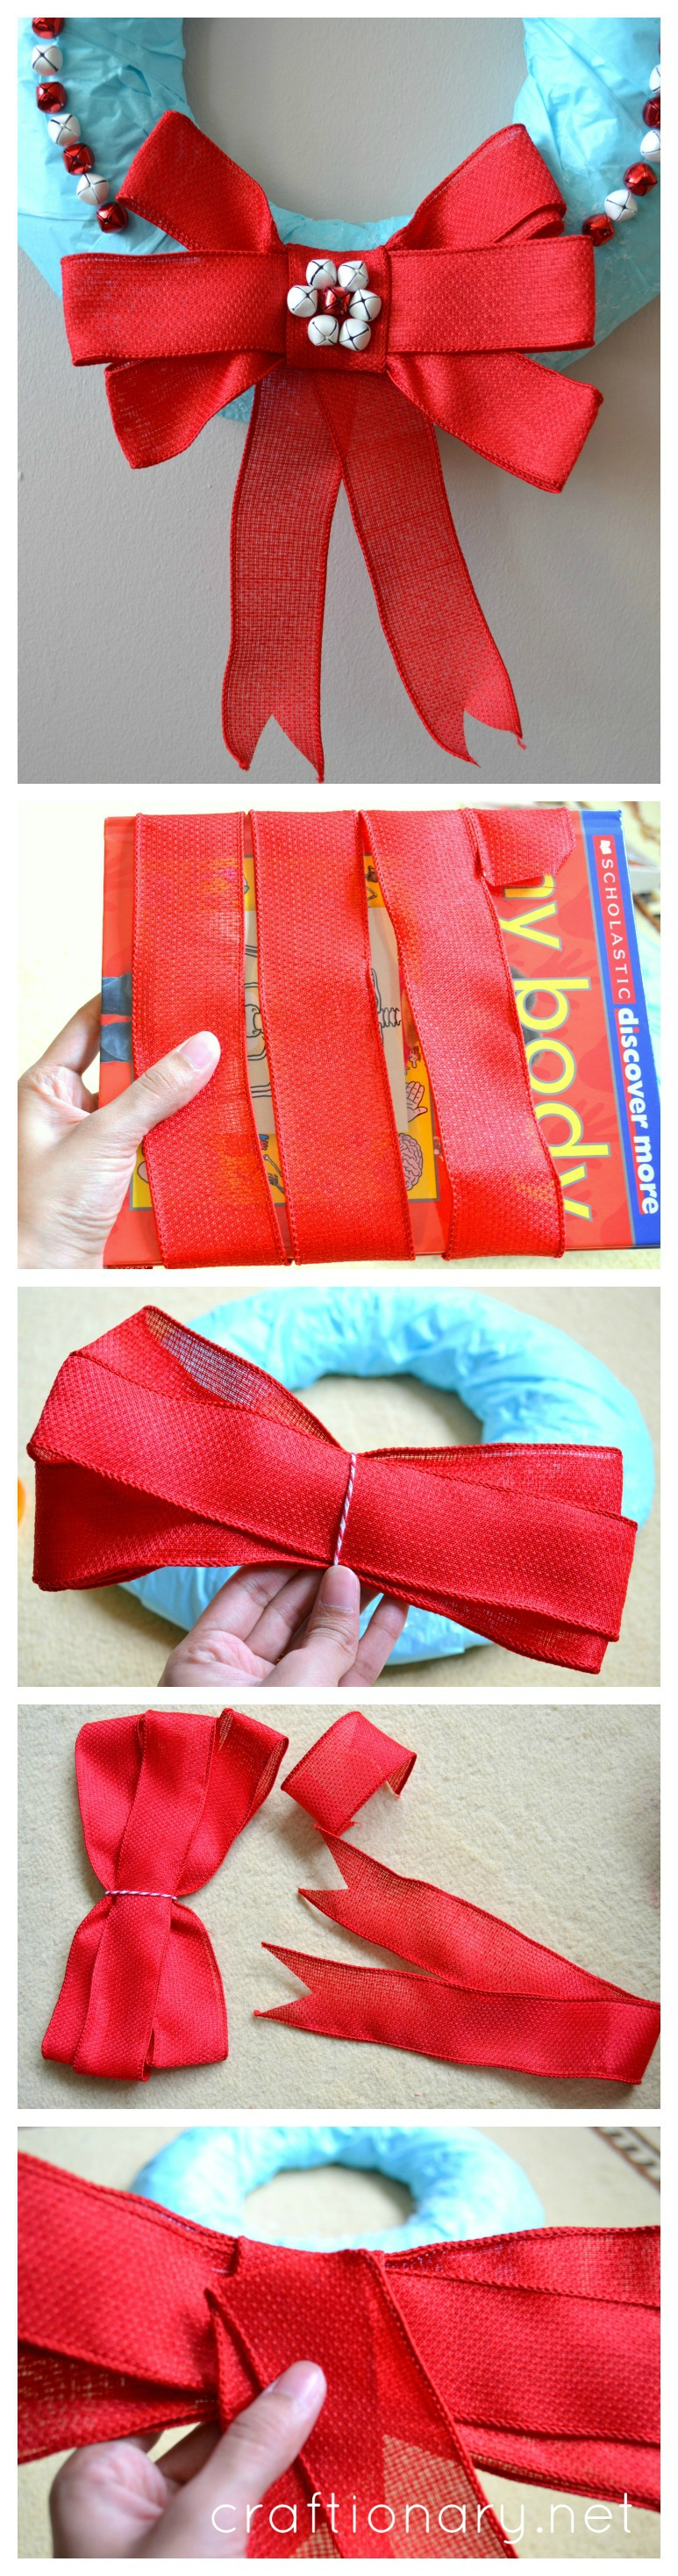 Make a perfect bow - easy tutorial at craftionary.net #bow